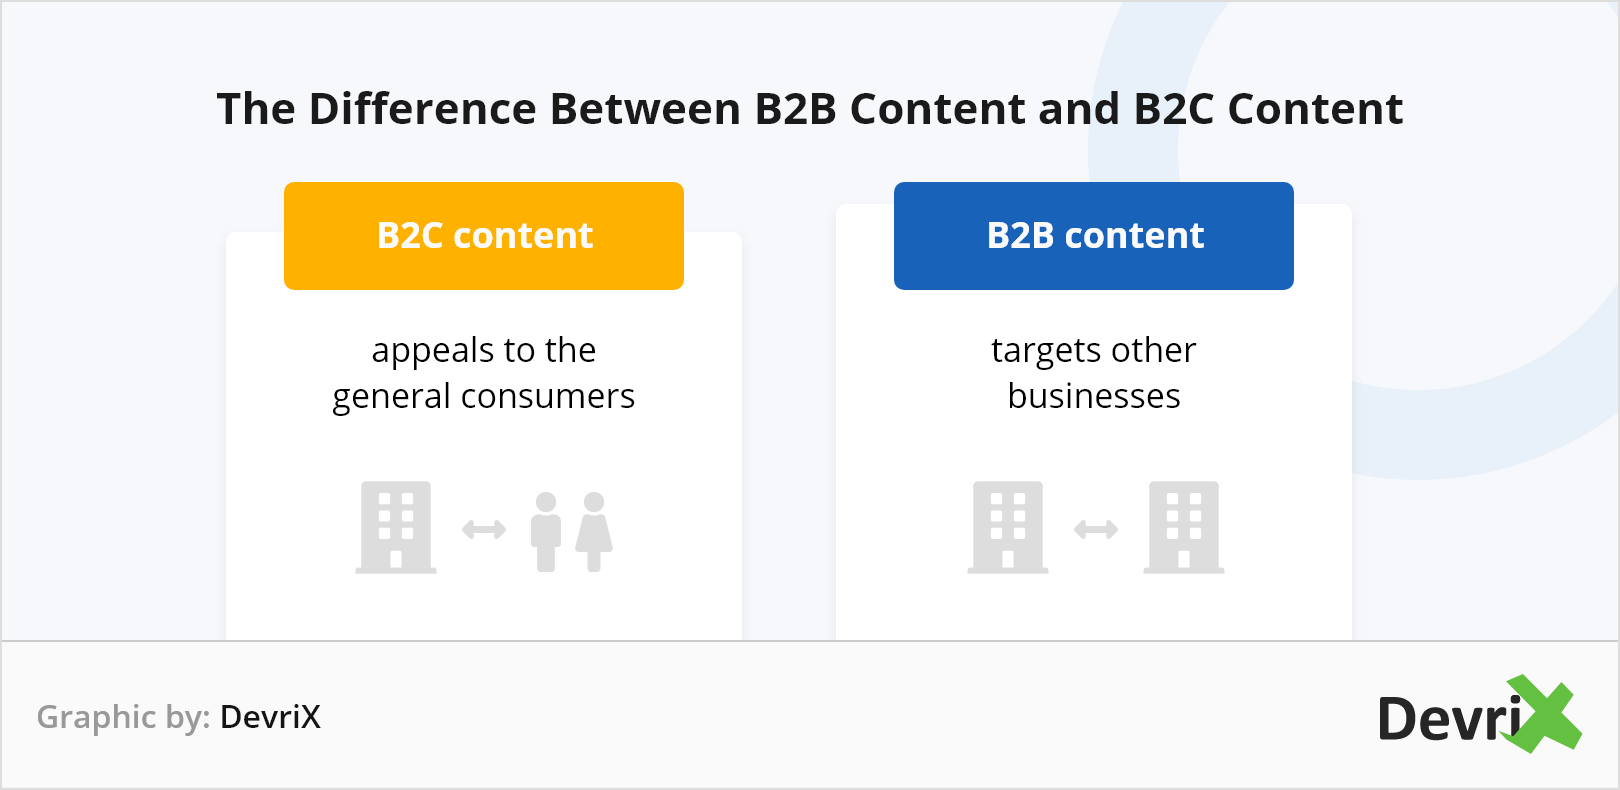 What Makes B2B Content Different From B2C Content?